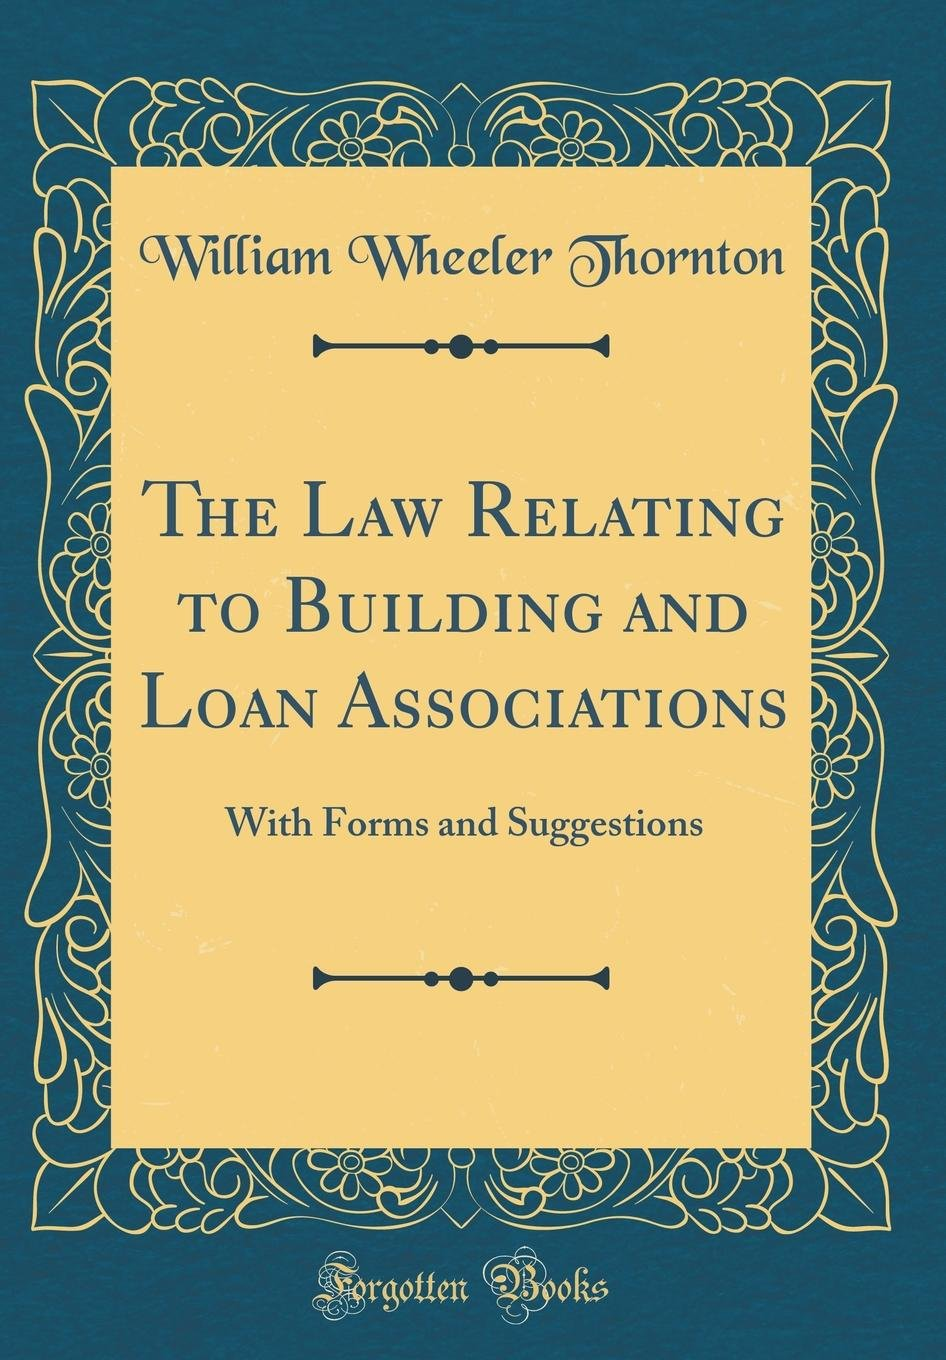 Download The Law Relating to Building and Loan Associations: With Forms and Suggestions (Classic Reprint) ebook